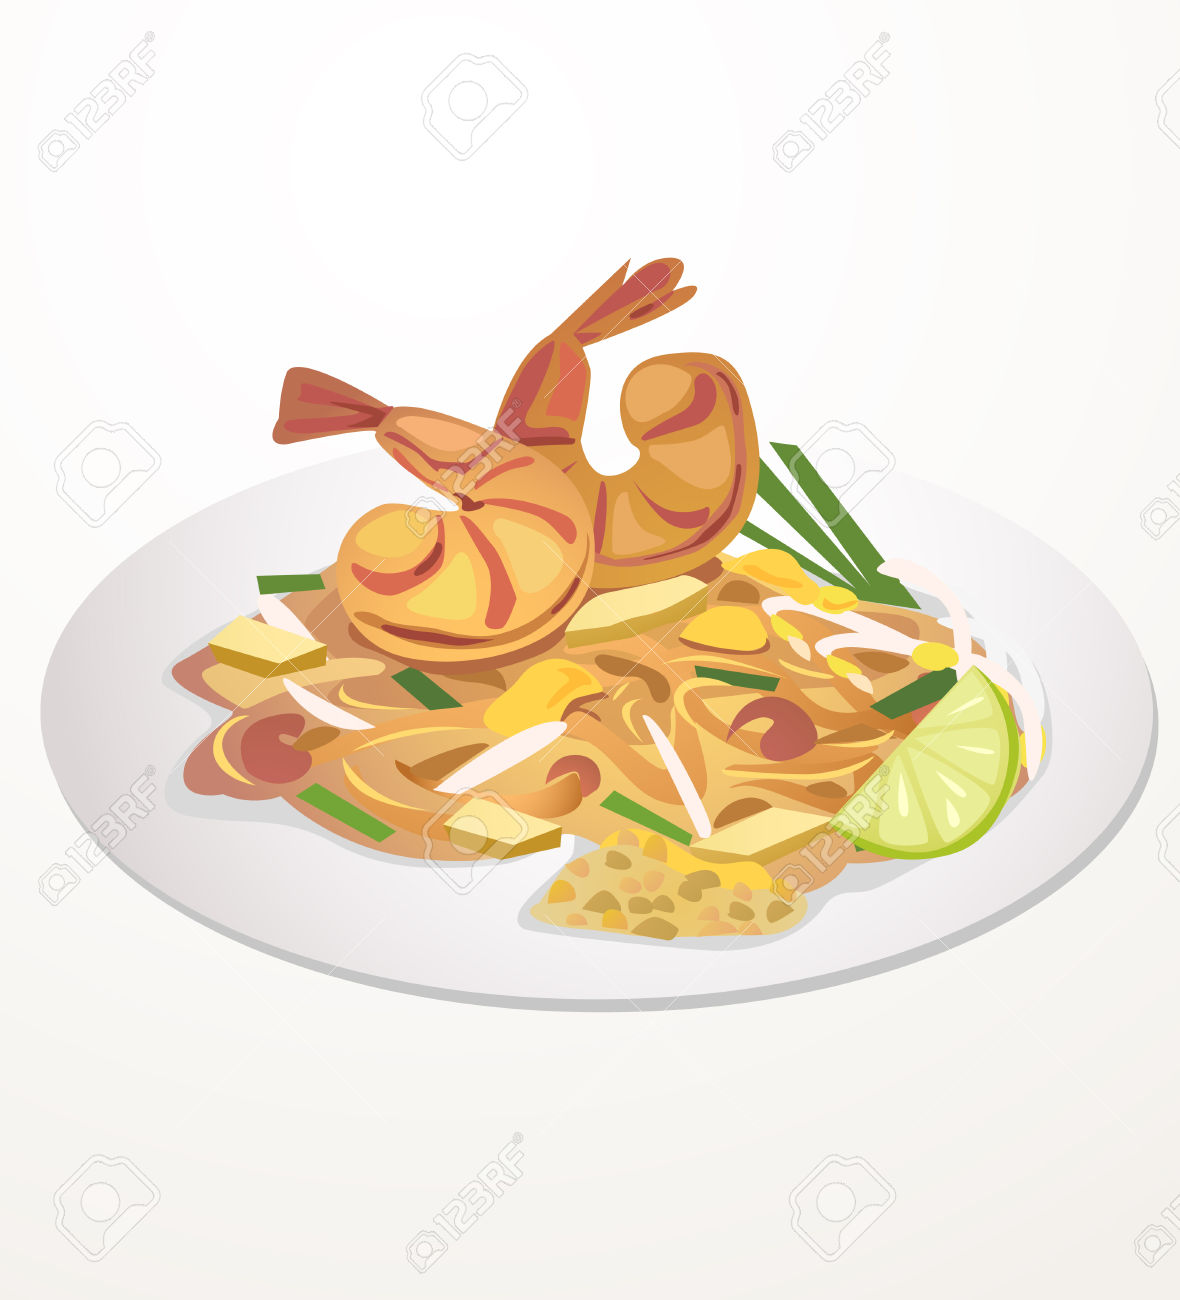 Thai food clipart free.